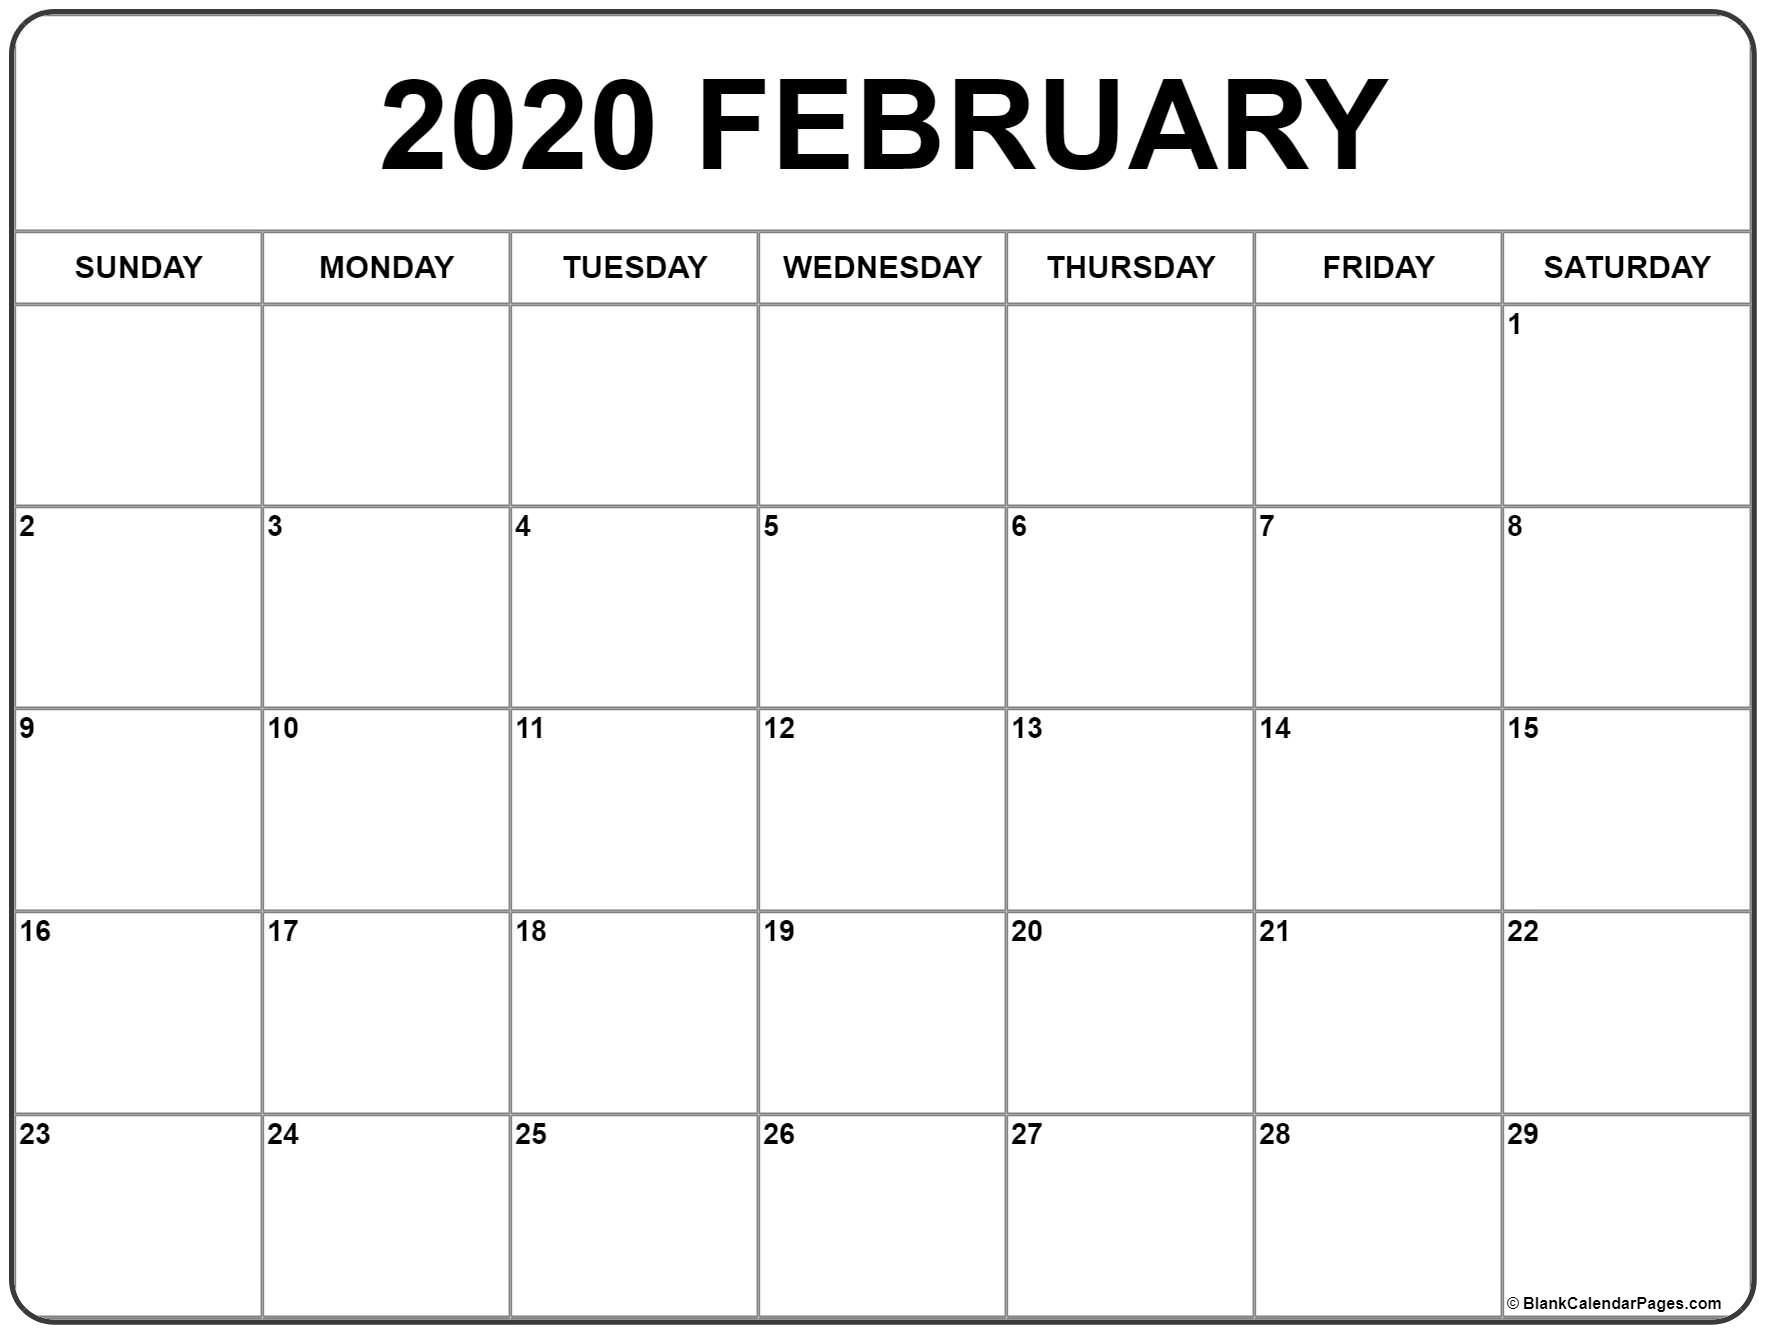 February 2020 Calendar | Free Printable Monthly Calendars